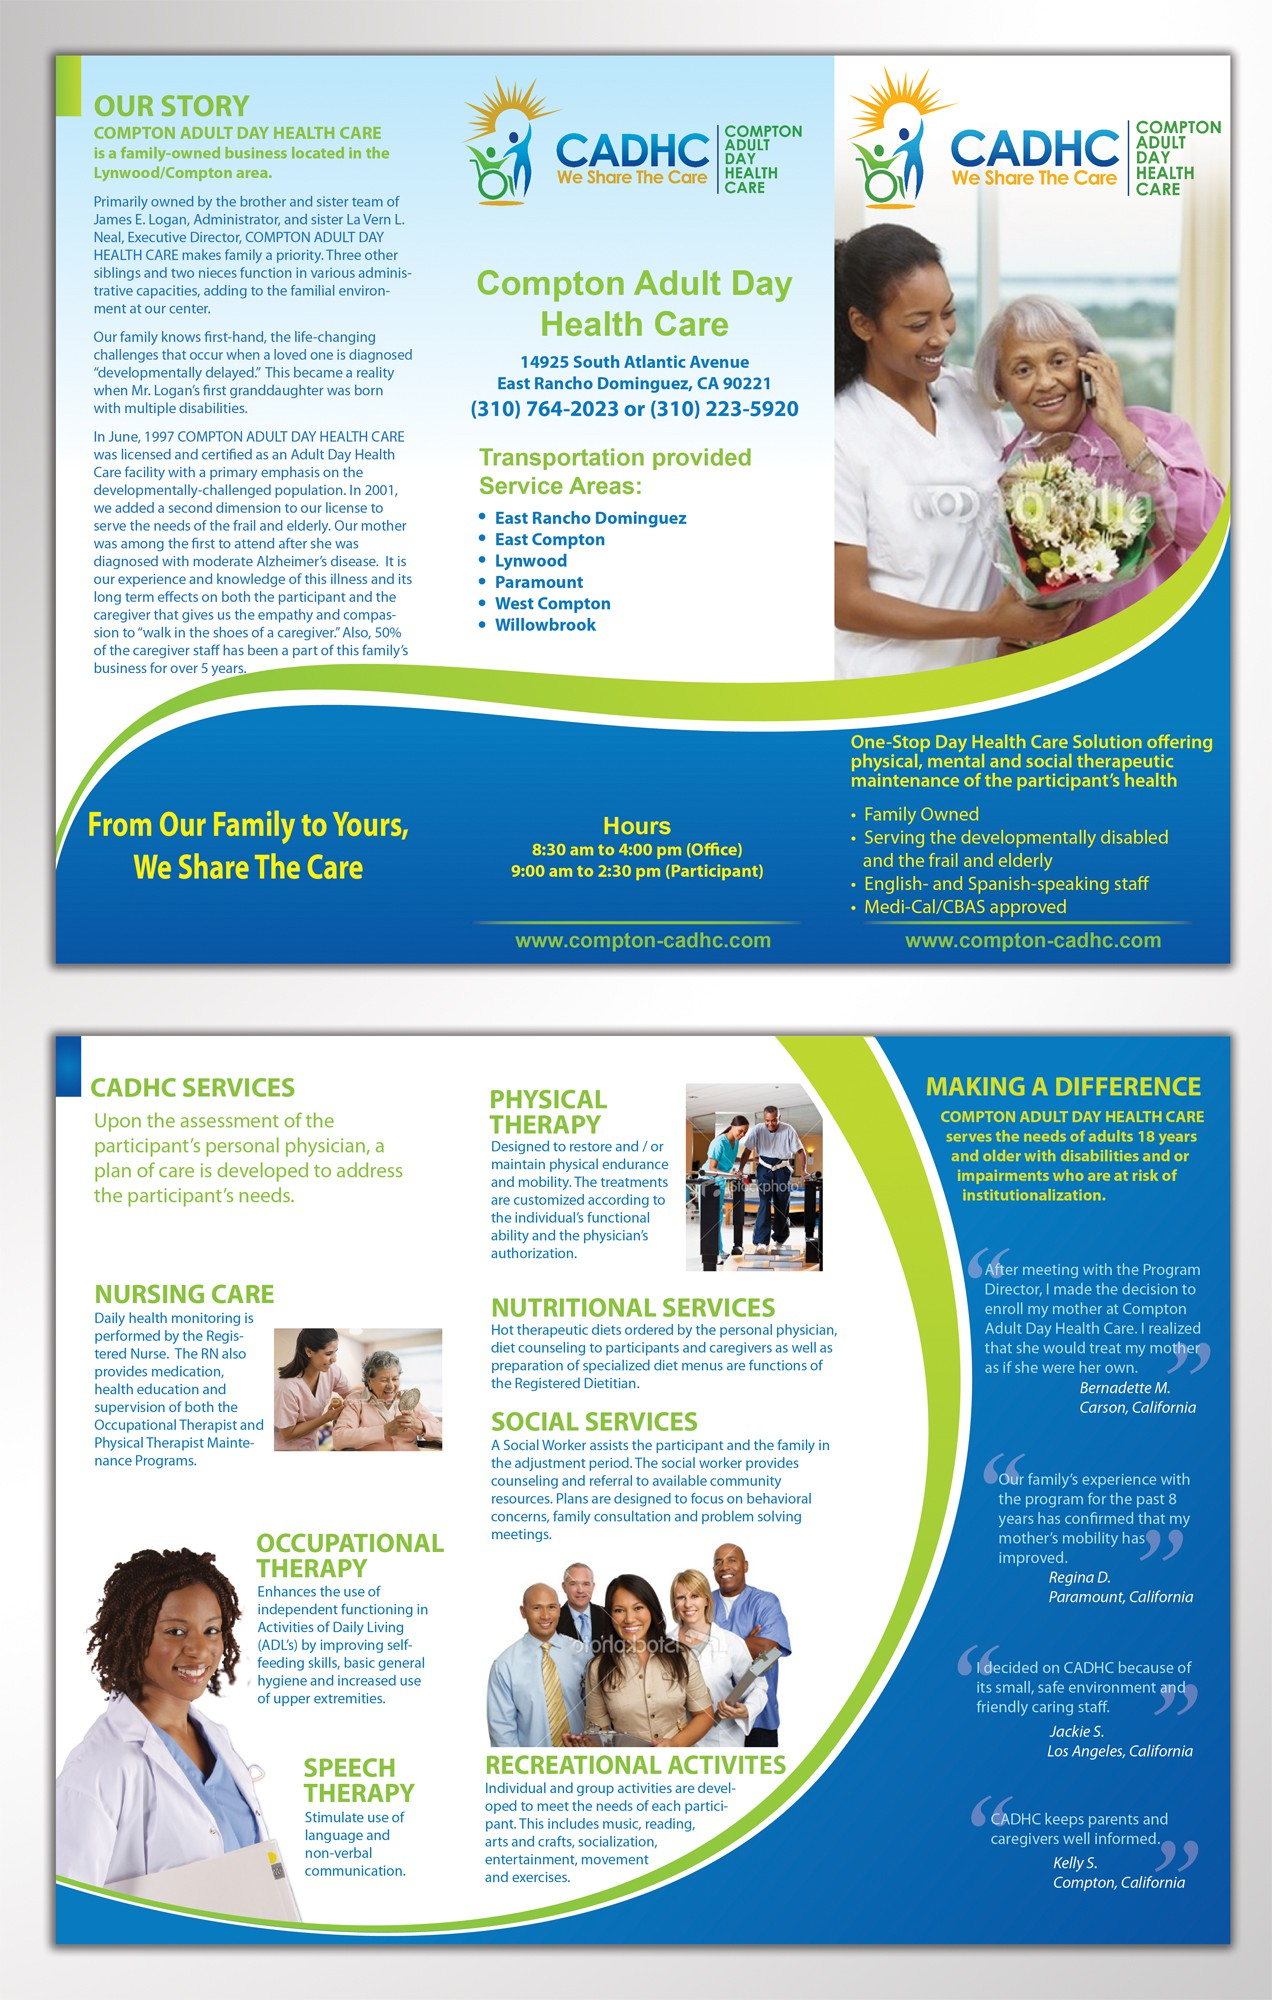 Help Compton Adult Day Health Care with a new brochure design